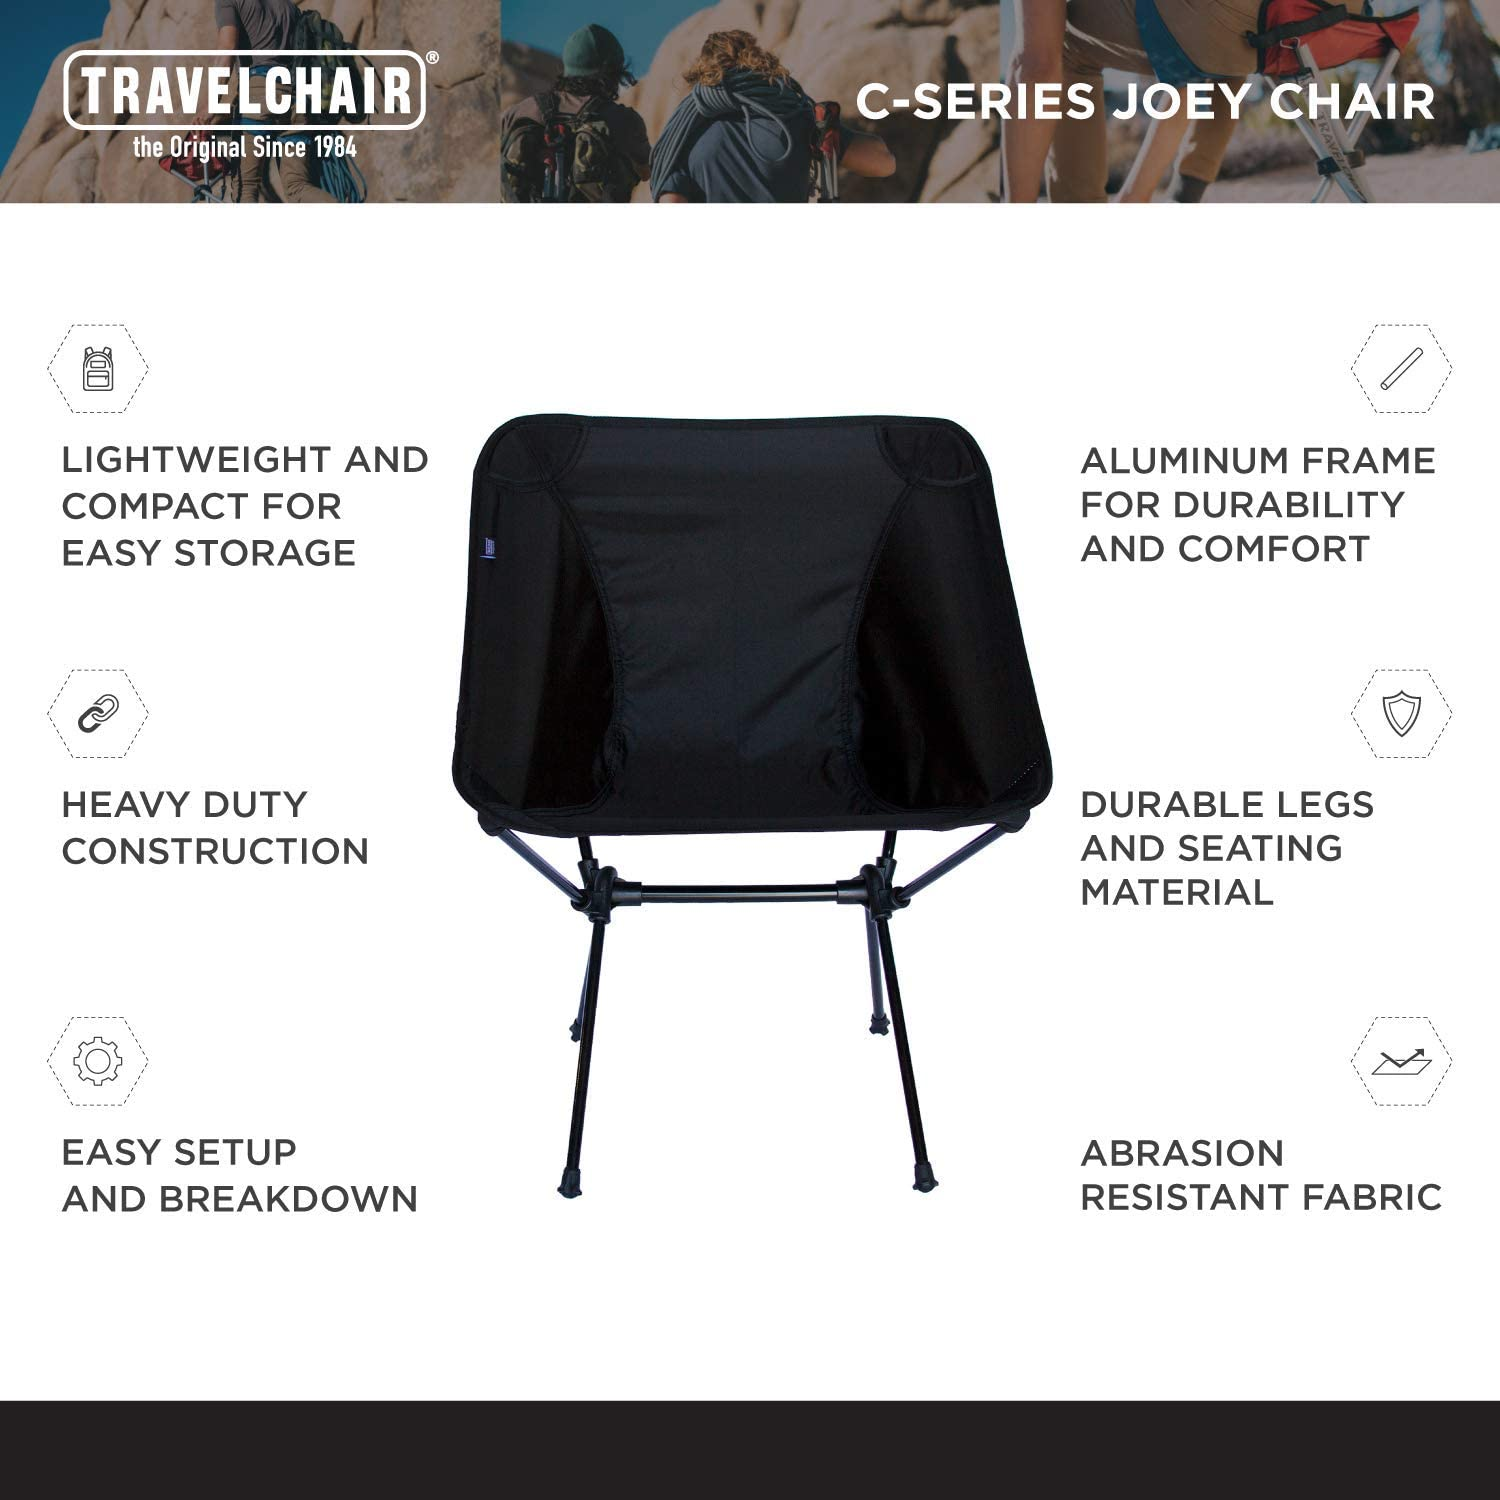 Super Compact Storage Travelchair Joey Chair Portable Camping Chair